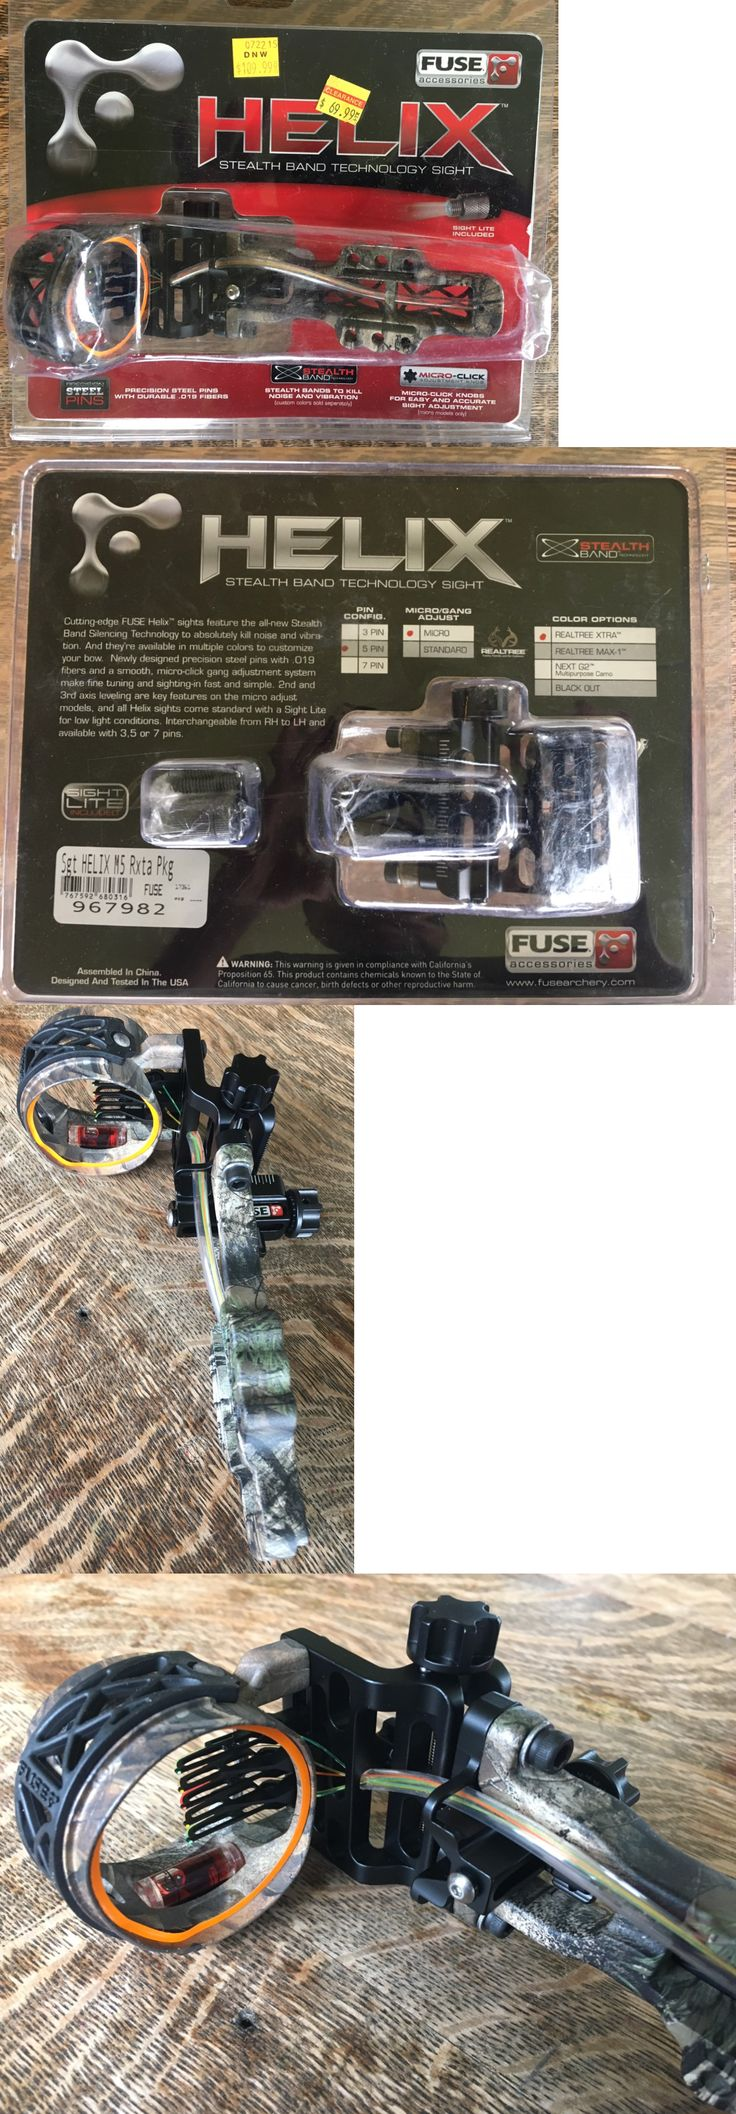 Sights 20845: Fuse Archery Helix M5 Stealth Band Sight 5 Pin Micro Adjust Realtree Xtra 967982 -> BUY IT NOW ONLY: $61.79 on eBay!